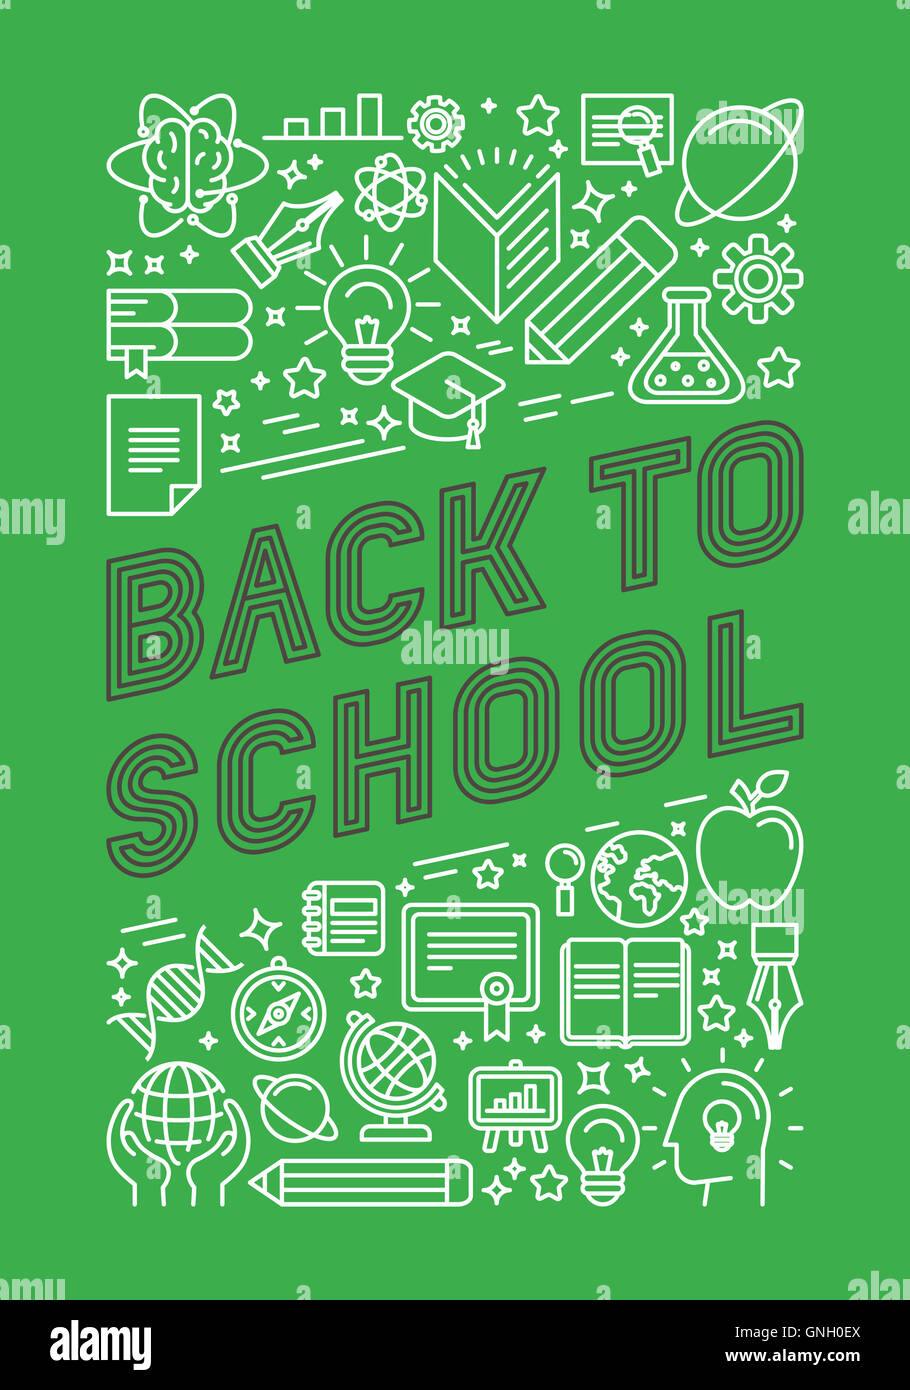 Trendy Poster Designs: Back To School Poster Design In Trendy Linear Style